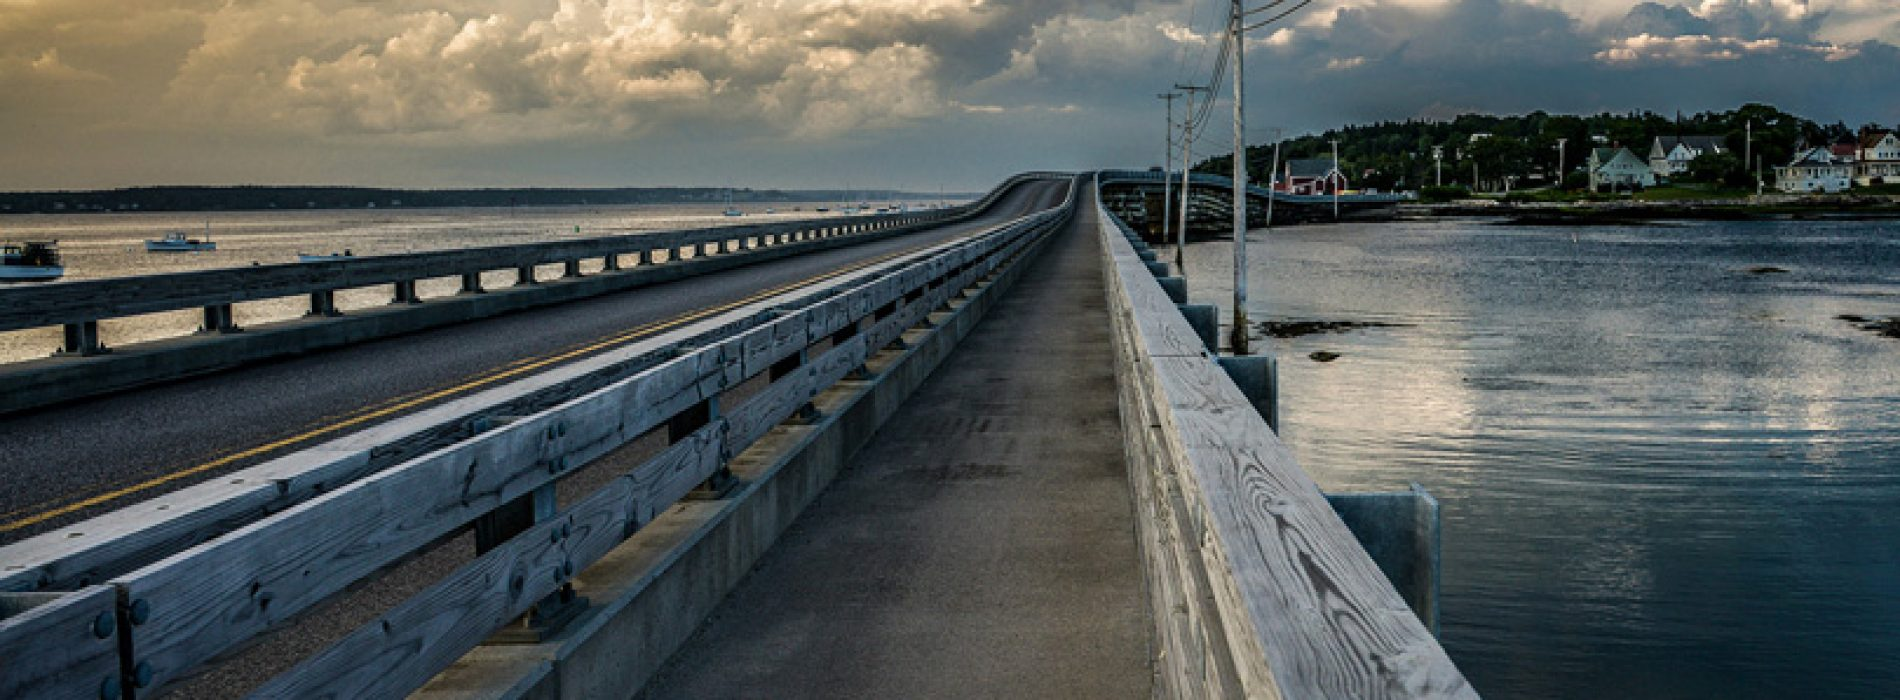 Groundbreaking plan would reverse Trump's infrastructure cuts, invest in Maine